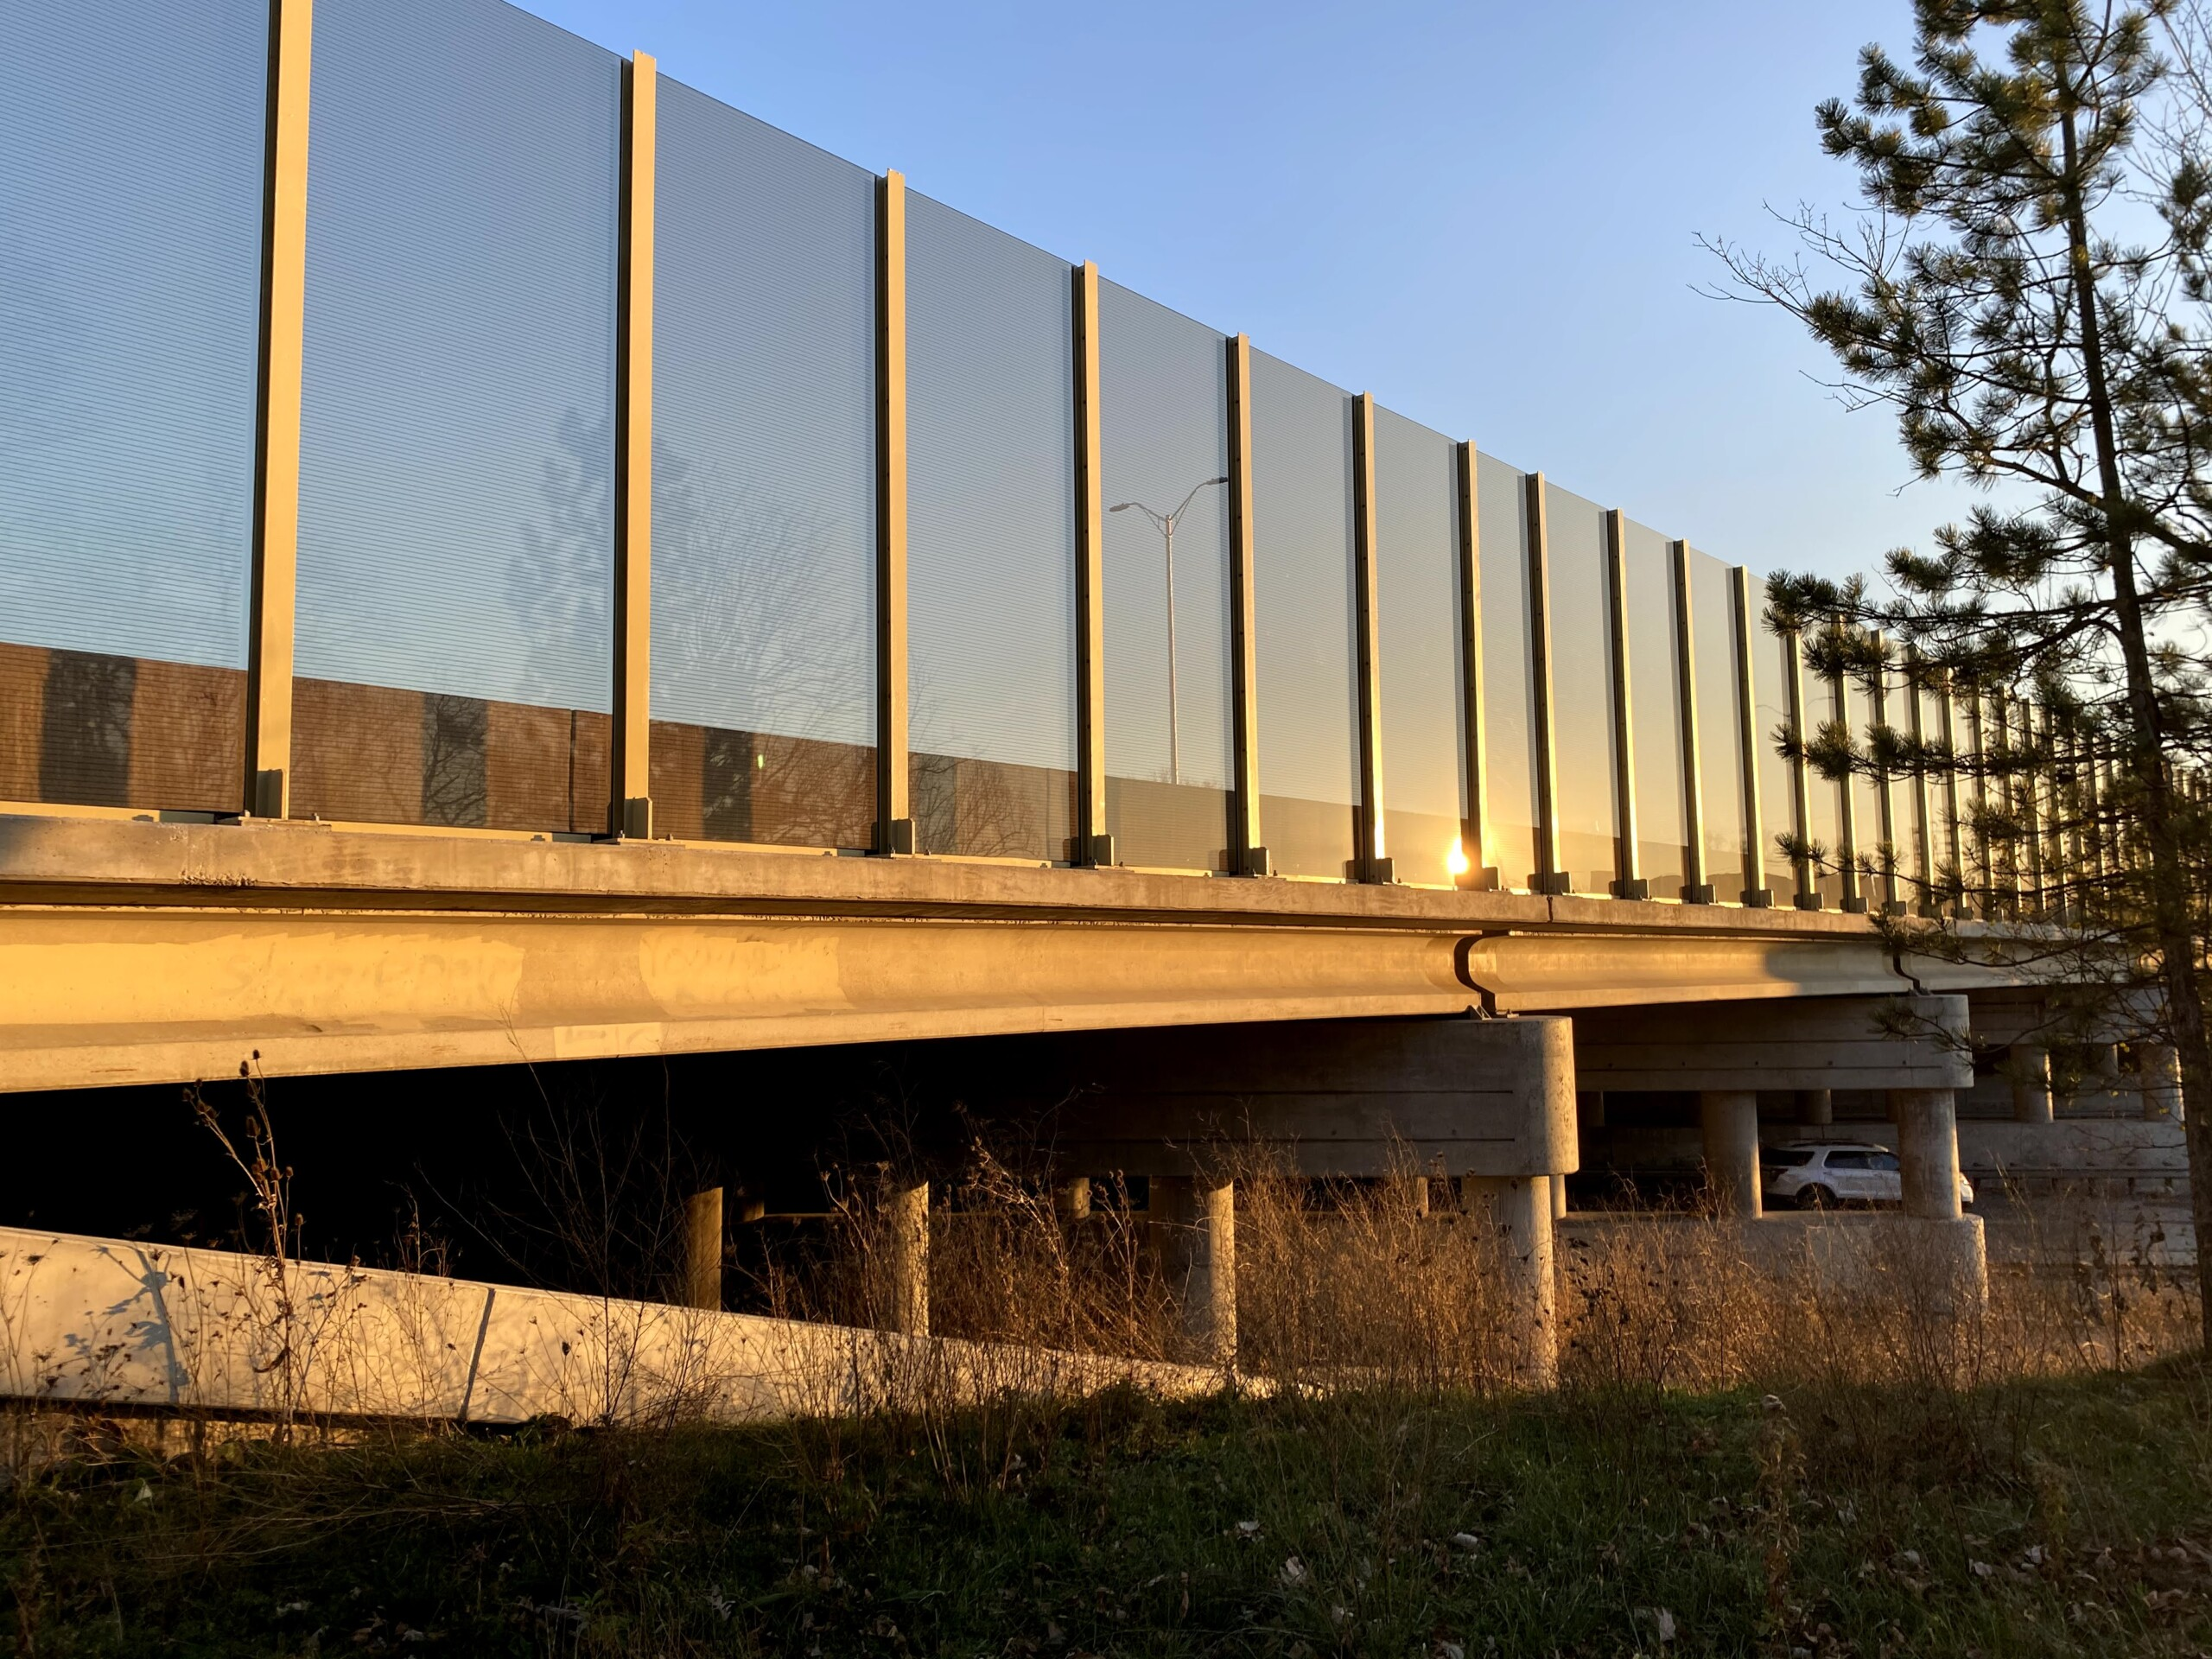 Transparent noise barrier panels with Bird Guard installed on a bridge on the Reagan Memorial Highway (I-88) in Elmhurst, IL.